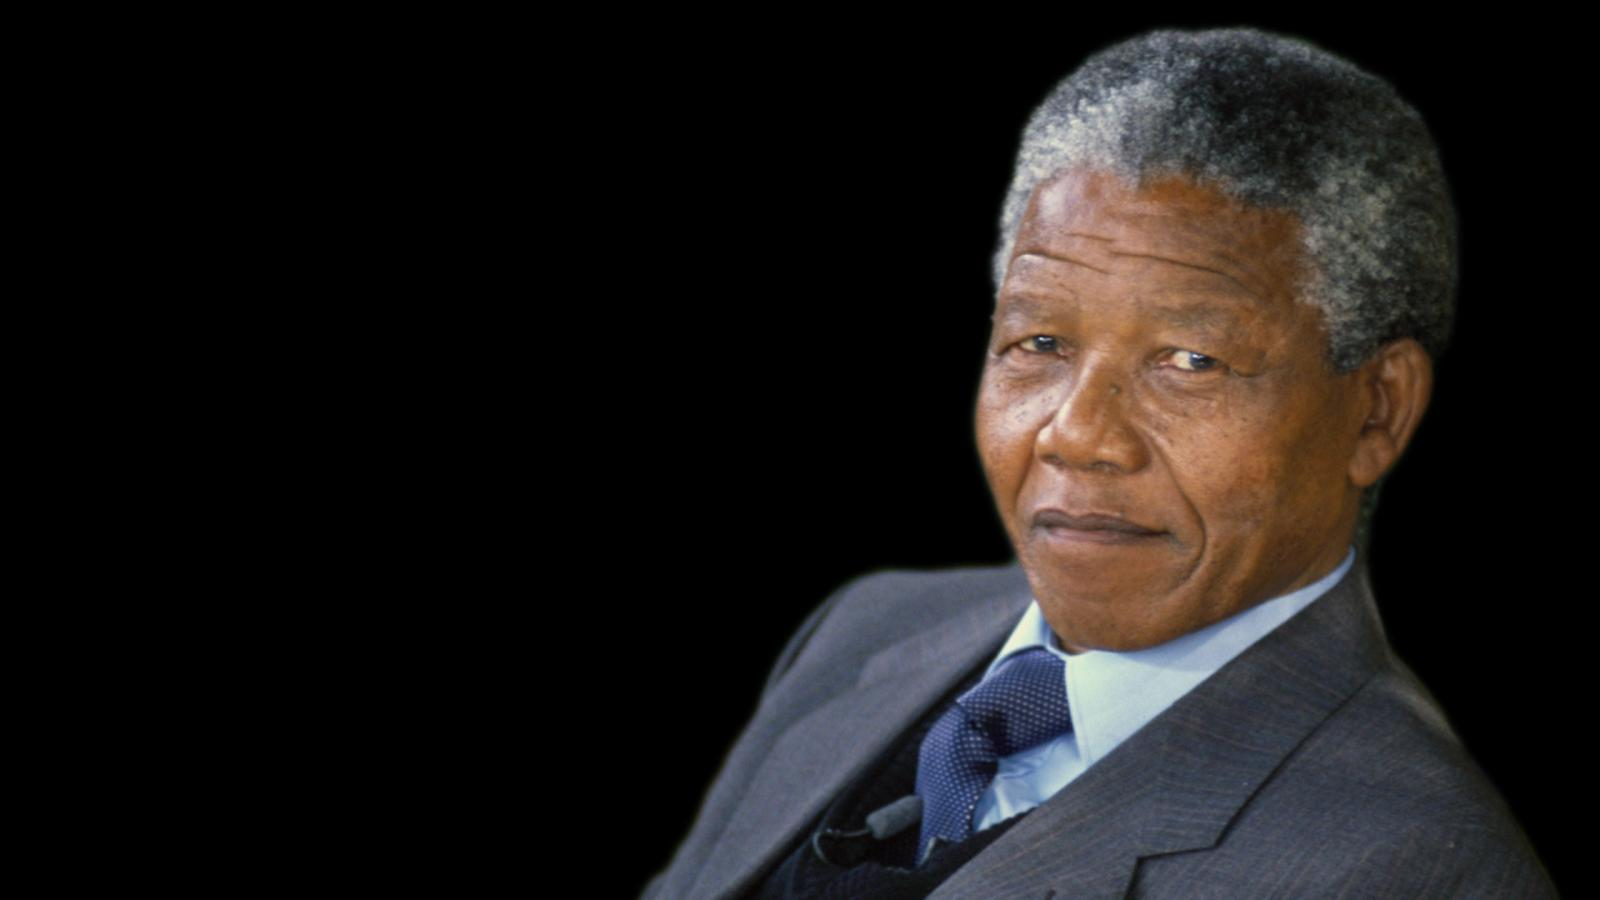 essay nelson mandela biography Mandela day is an annual international day in honor of nelson mandela, celebrated each year on 18 july, mandela's birthday on his 90th birthday celebration in london's hyde park in 2008, he said: it is time for new hands to lift the burdens.